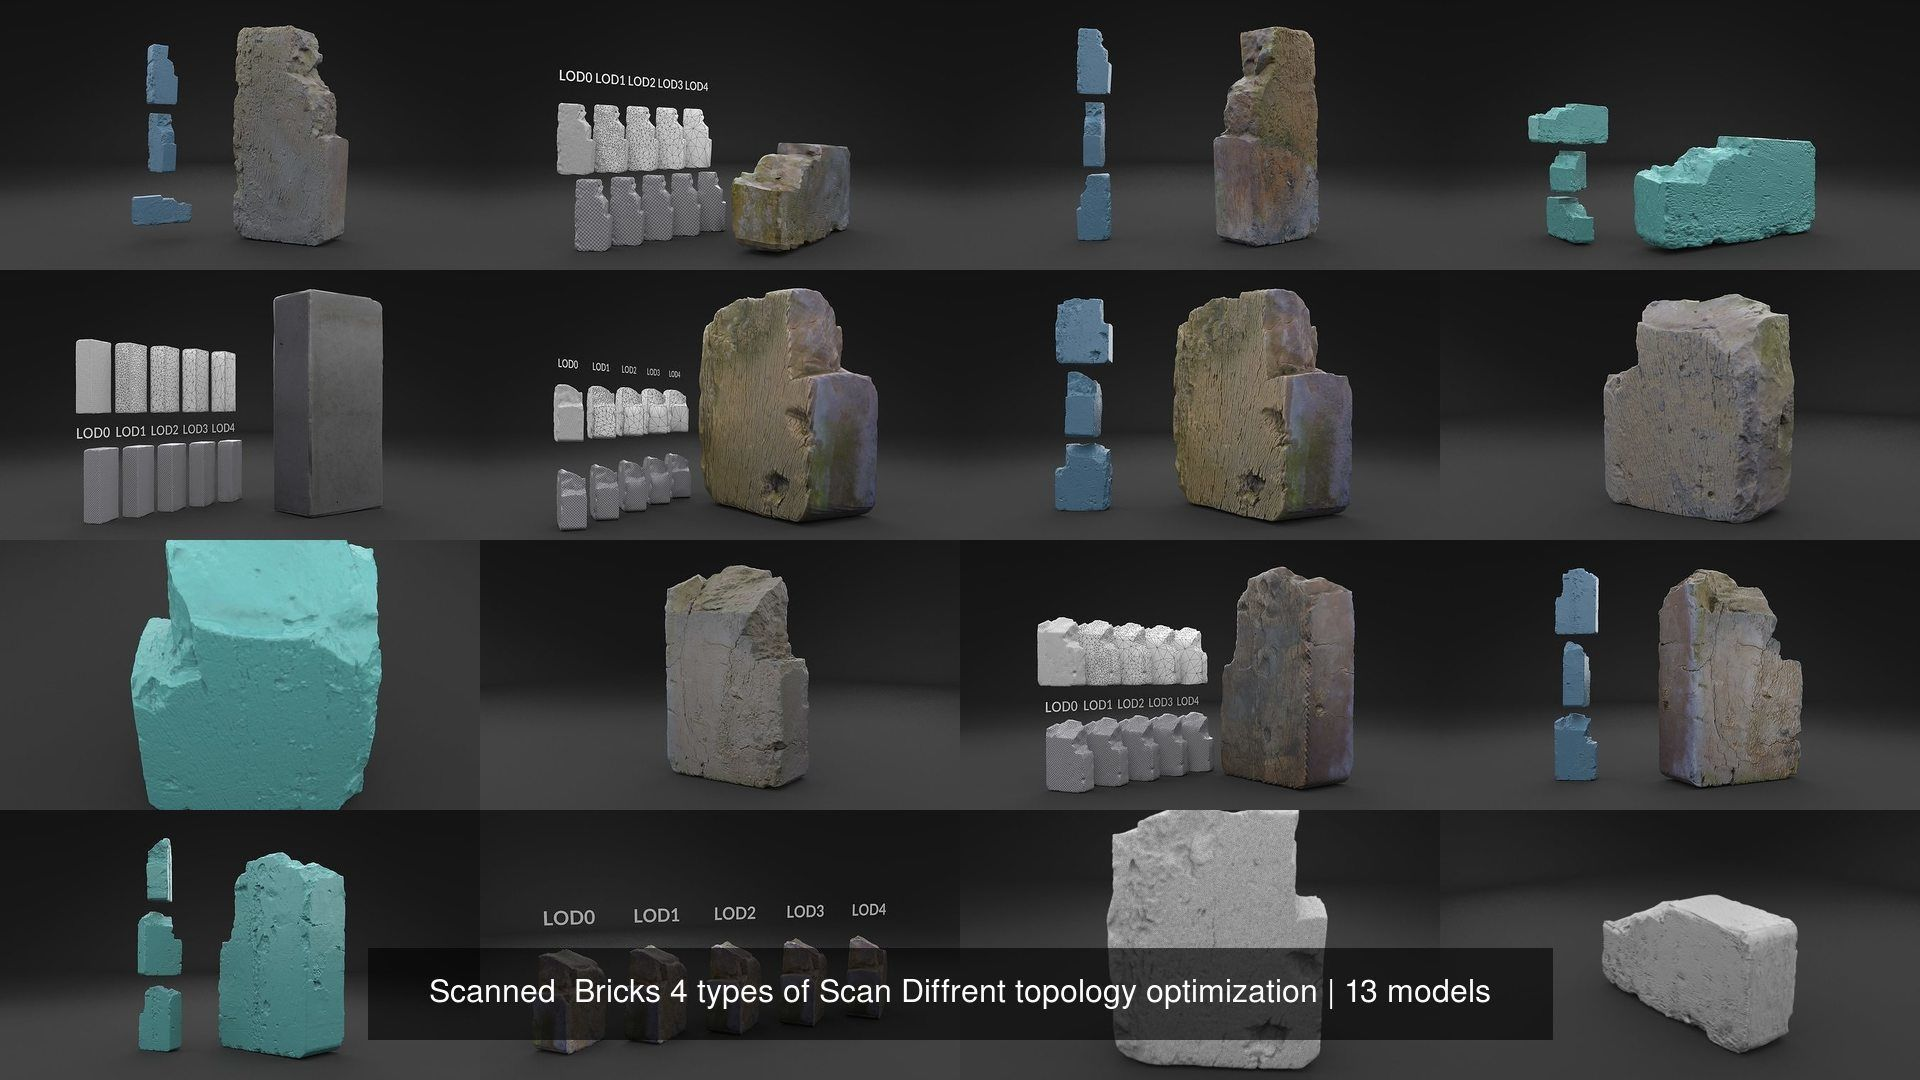 Scanned  Bricks 4 types of Scan Diffrent topology optimization